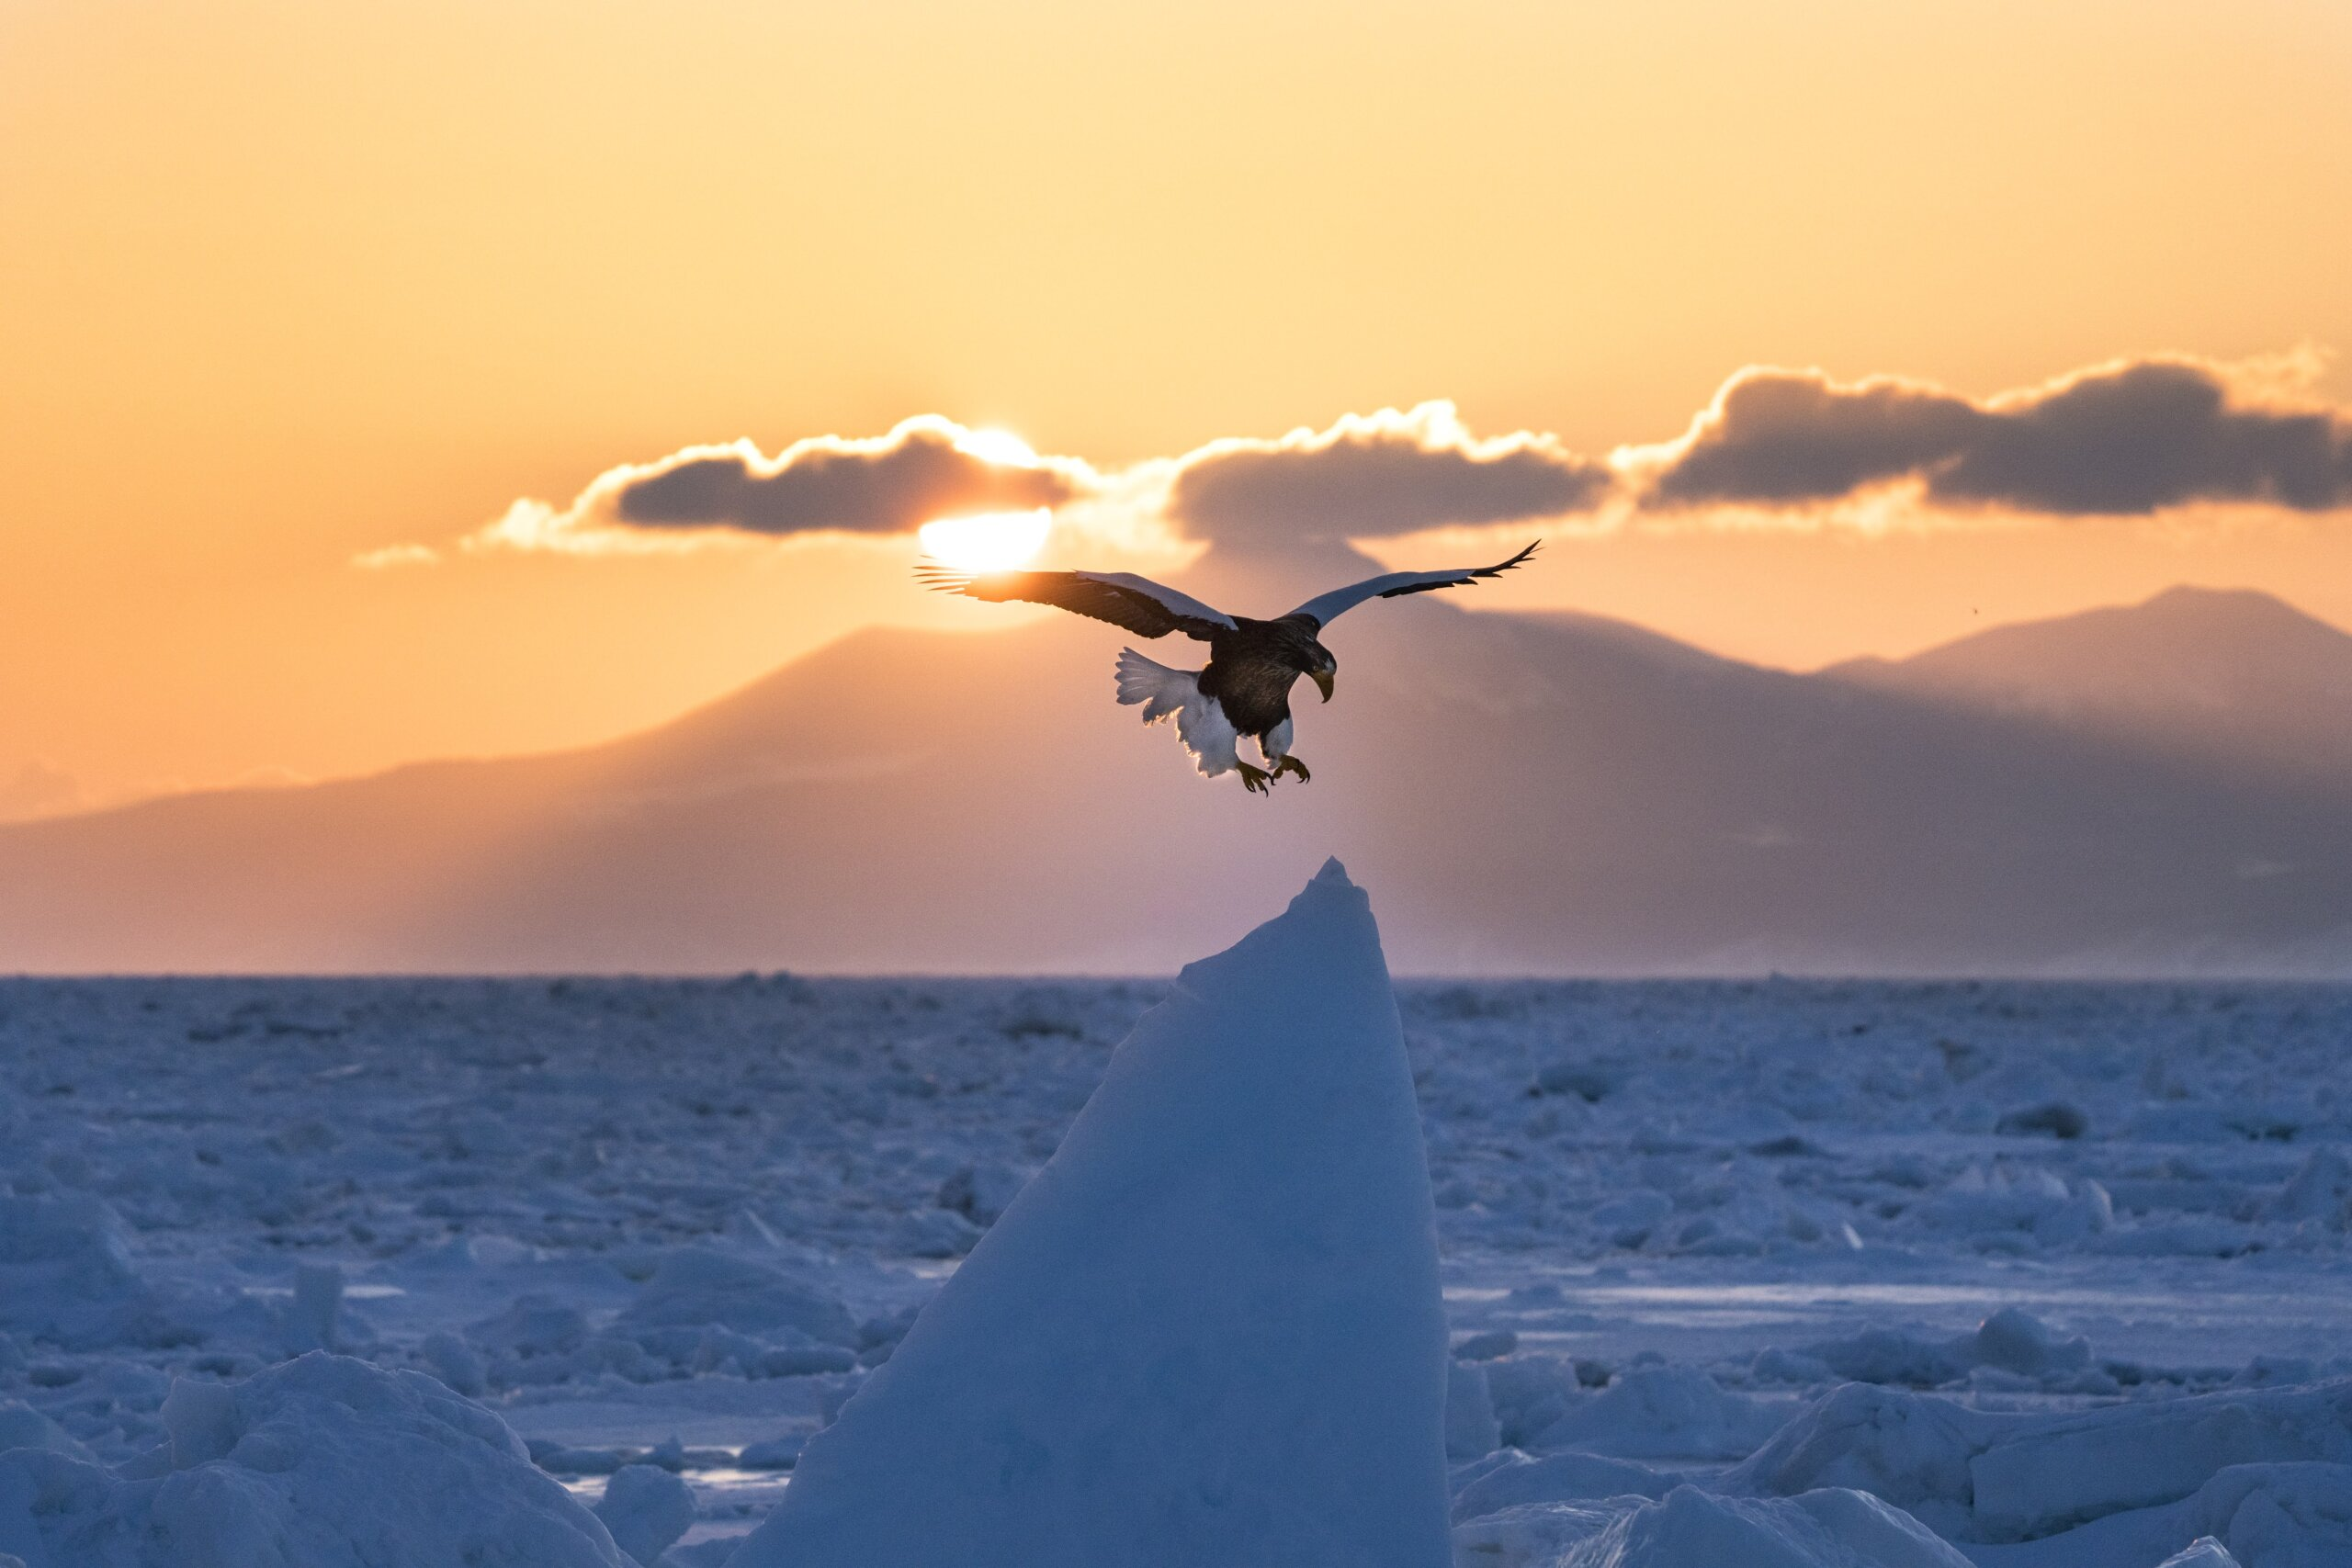 A bird-watching tour that departs from Rausu Port is held every winter. Kishimoto, who participated in the tour one February, photographed the moment when a Steller's sea eagle was about to alight on a block of drift ice. ⒸKishimoto Hideo